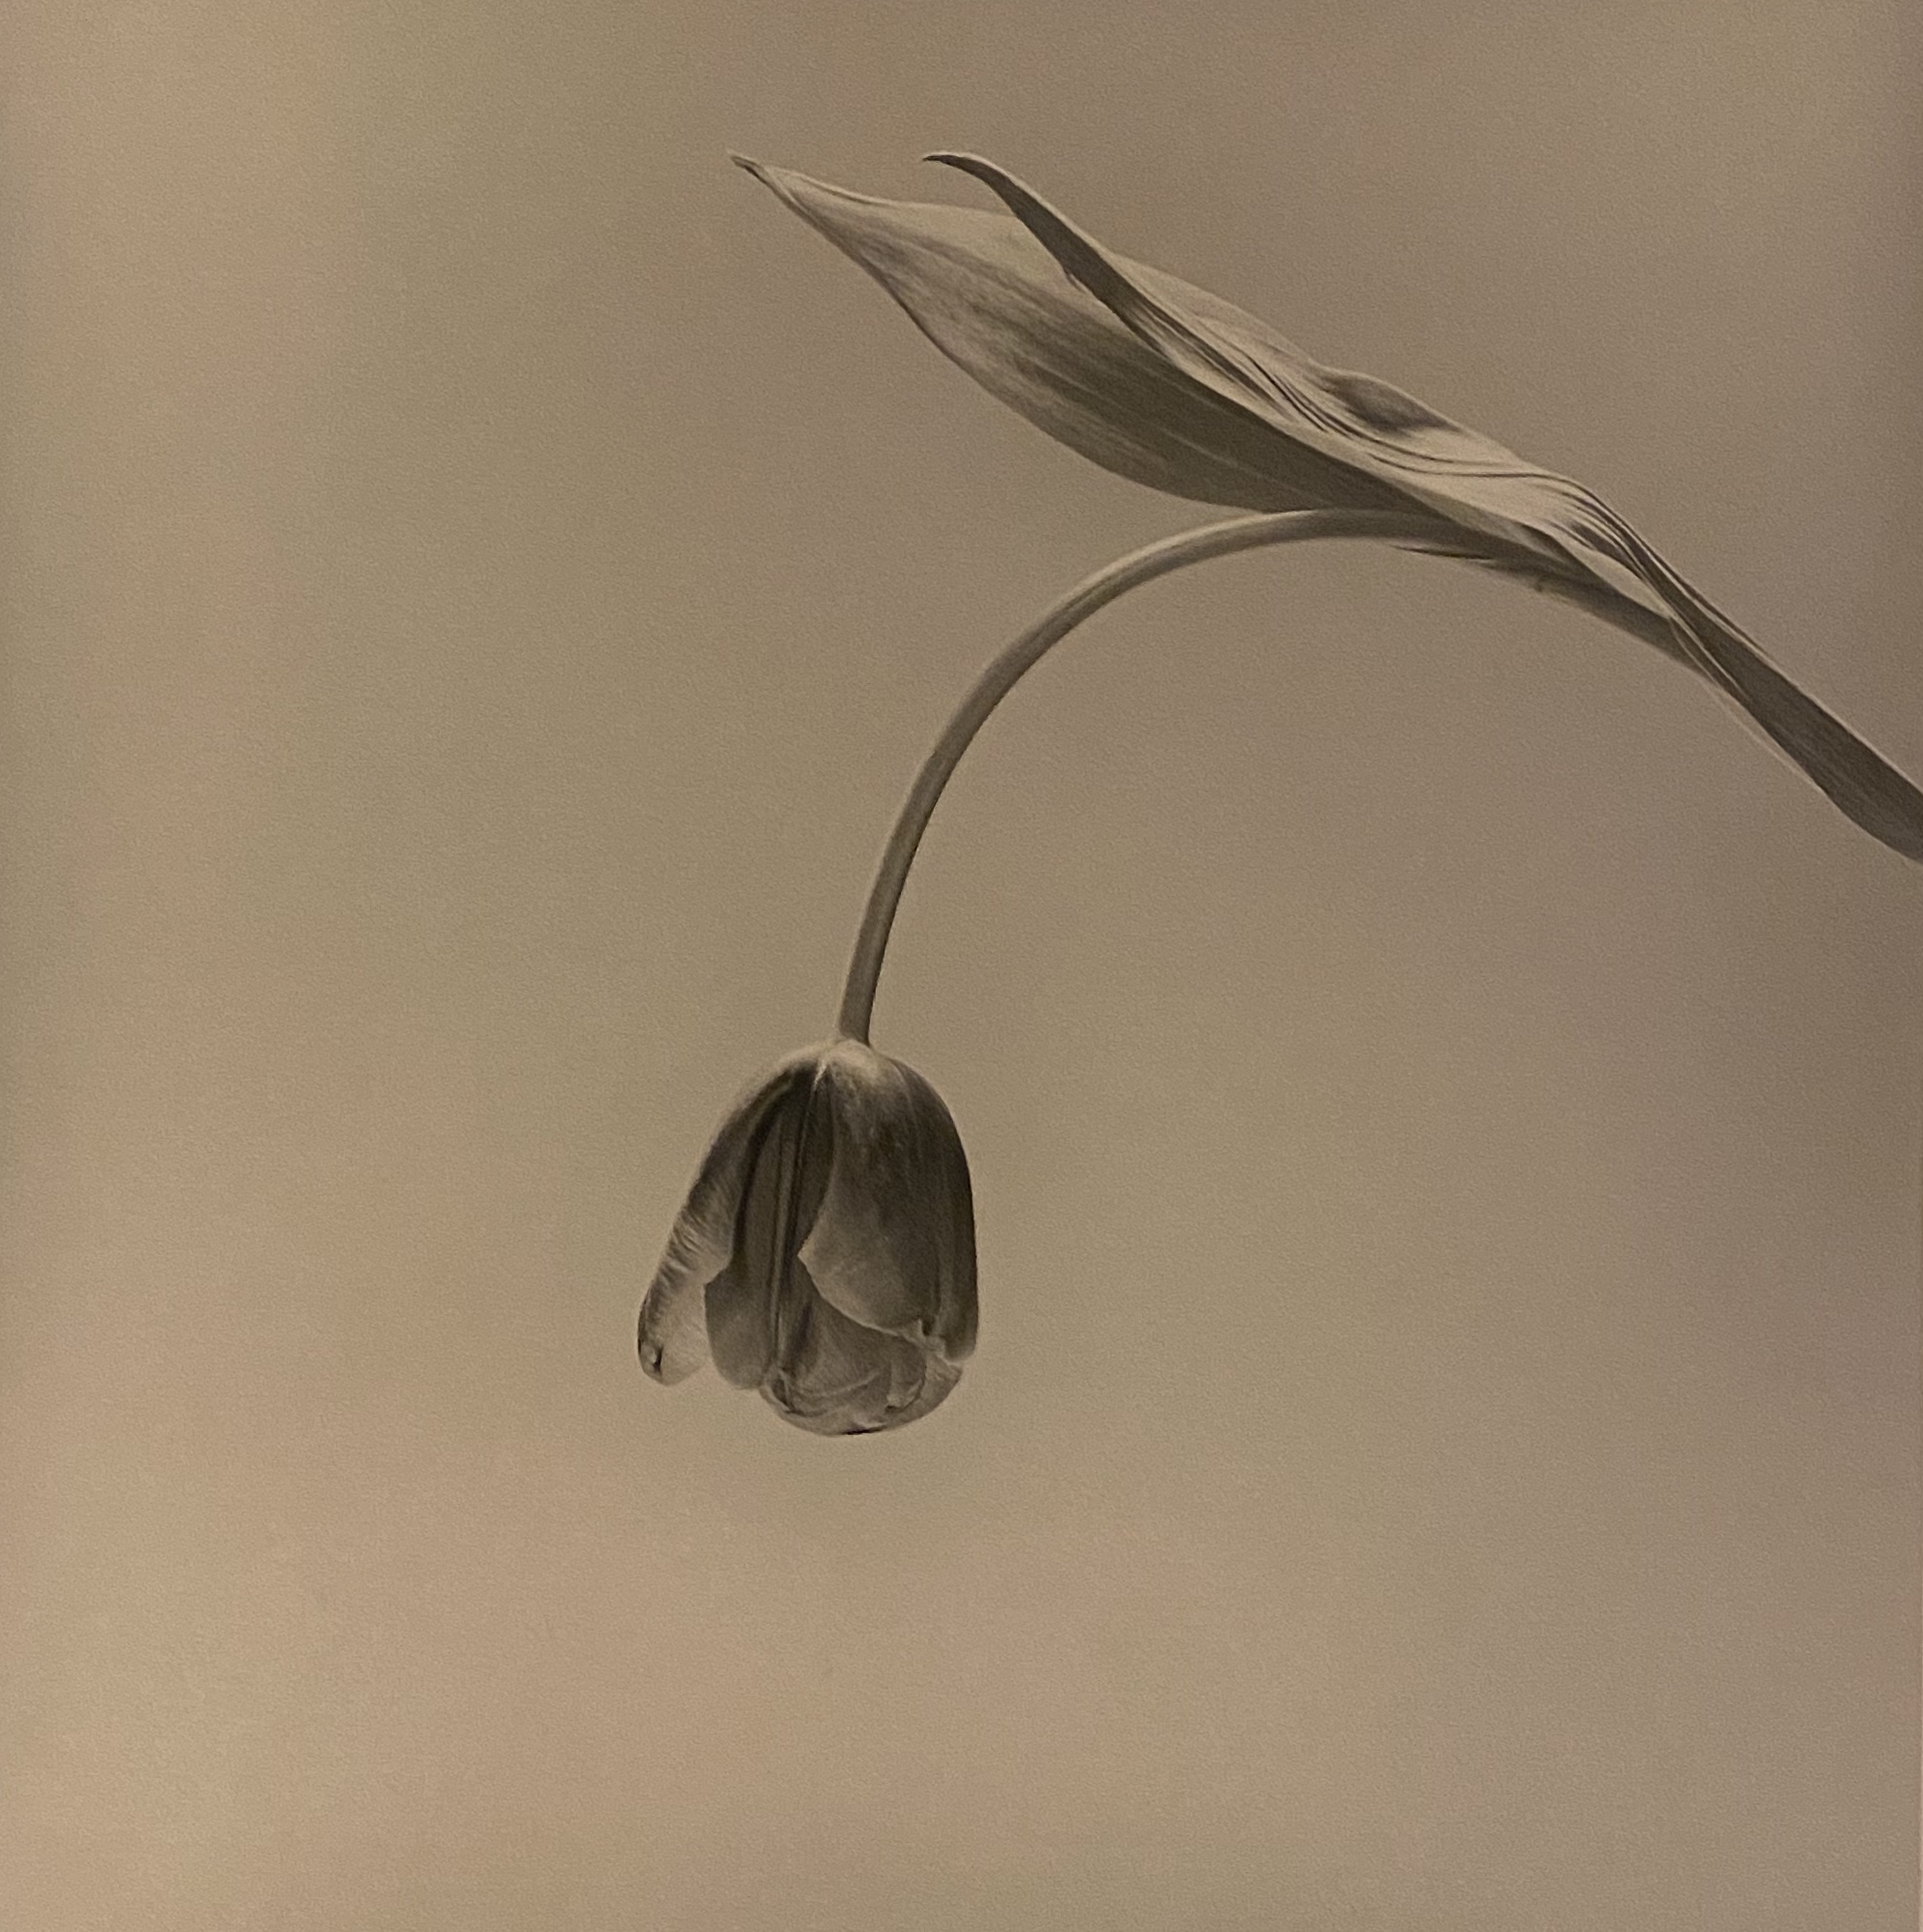 A single tulip, arcing down towards the ground on a midtone gray background